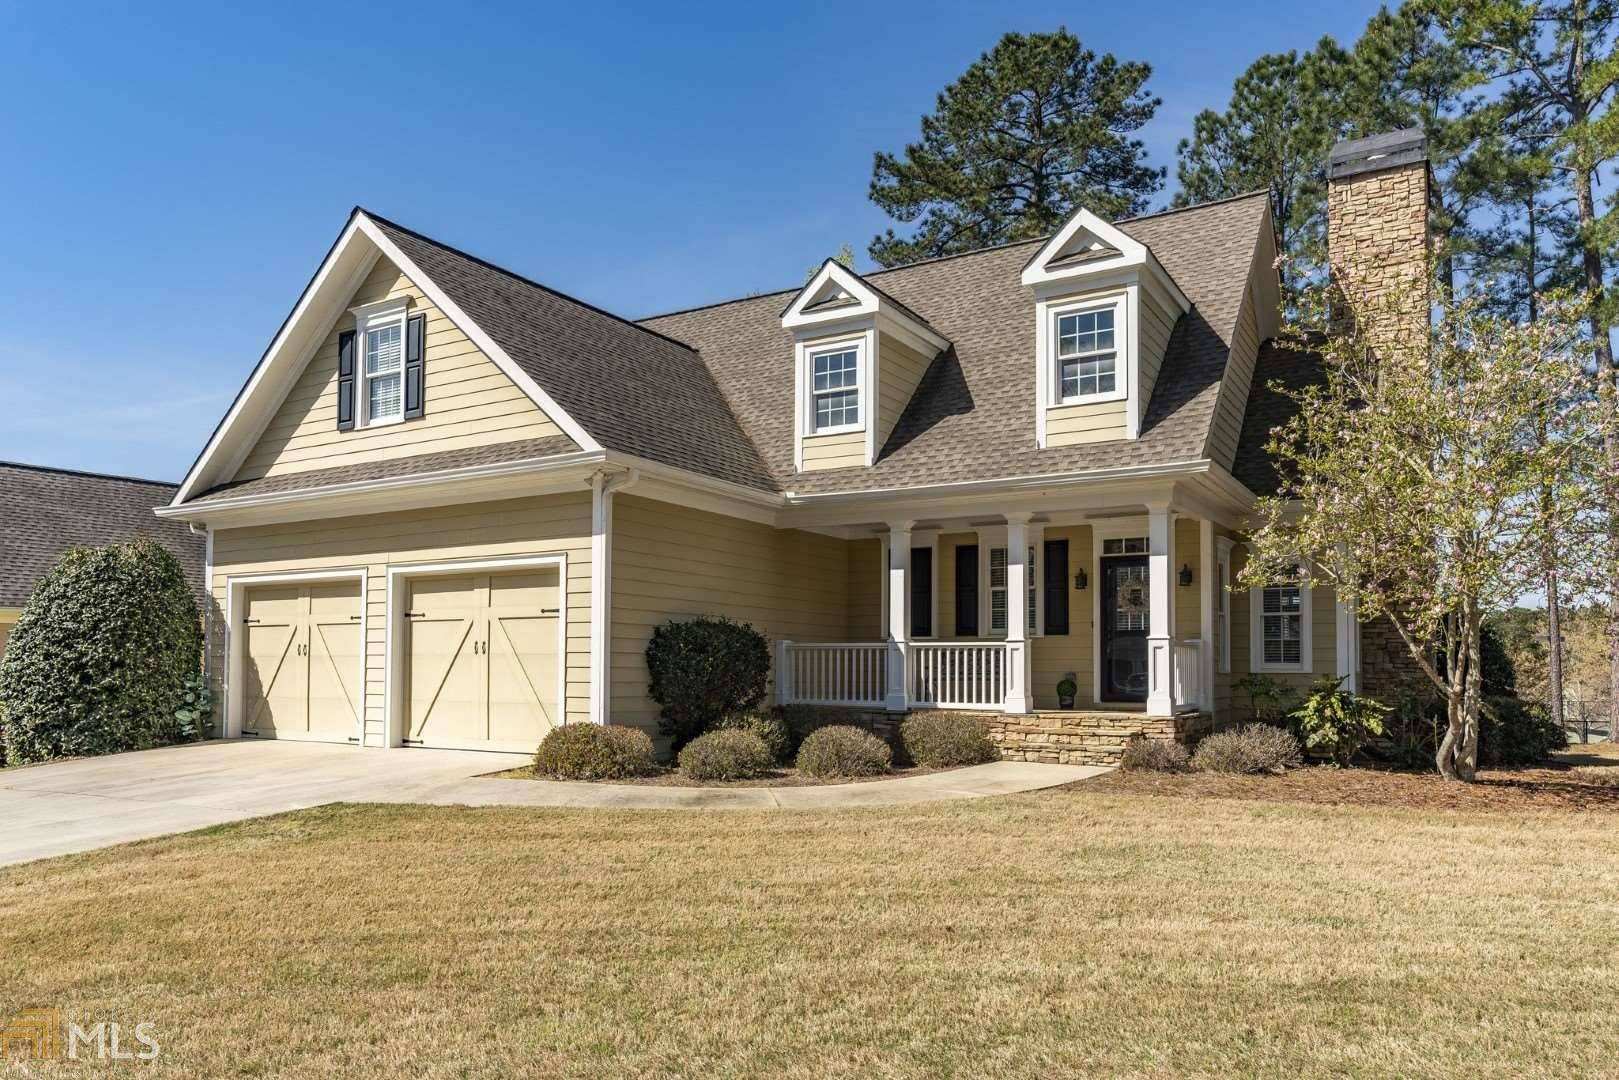 1071 Harbor Ridge Dr, Greensboro, GA 30642 - MLS#: 8782667